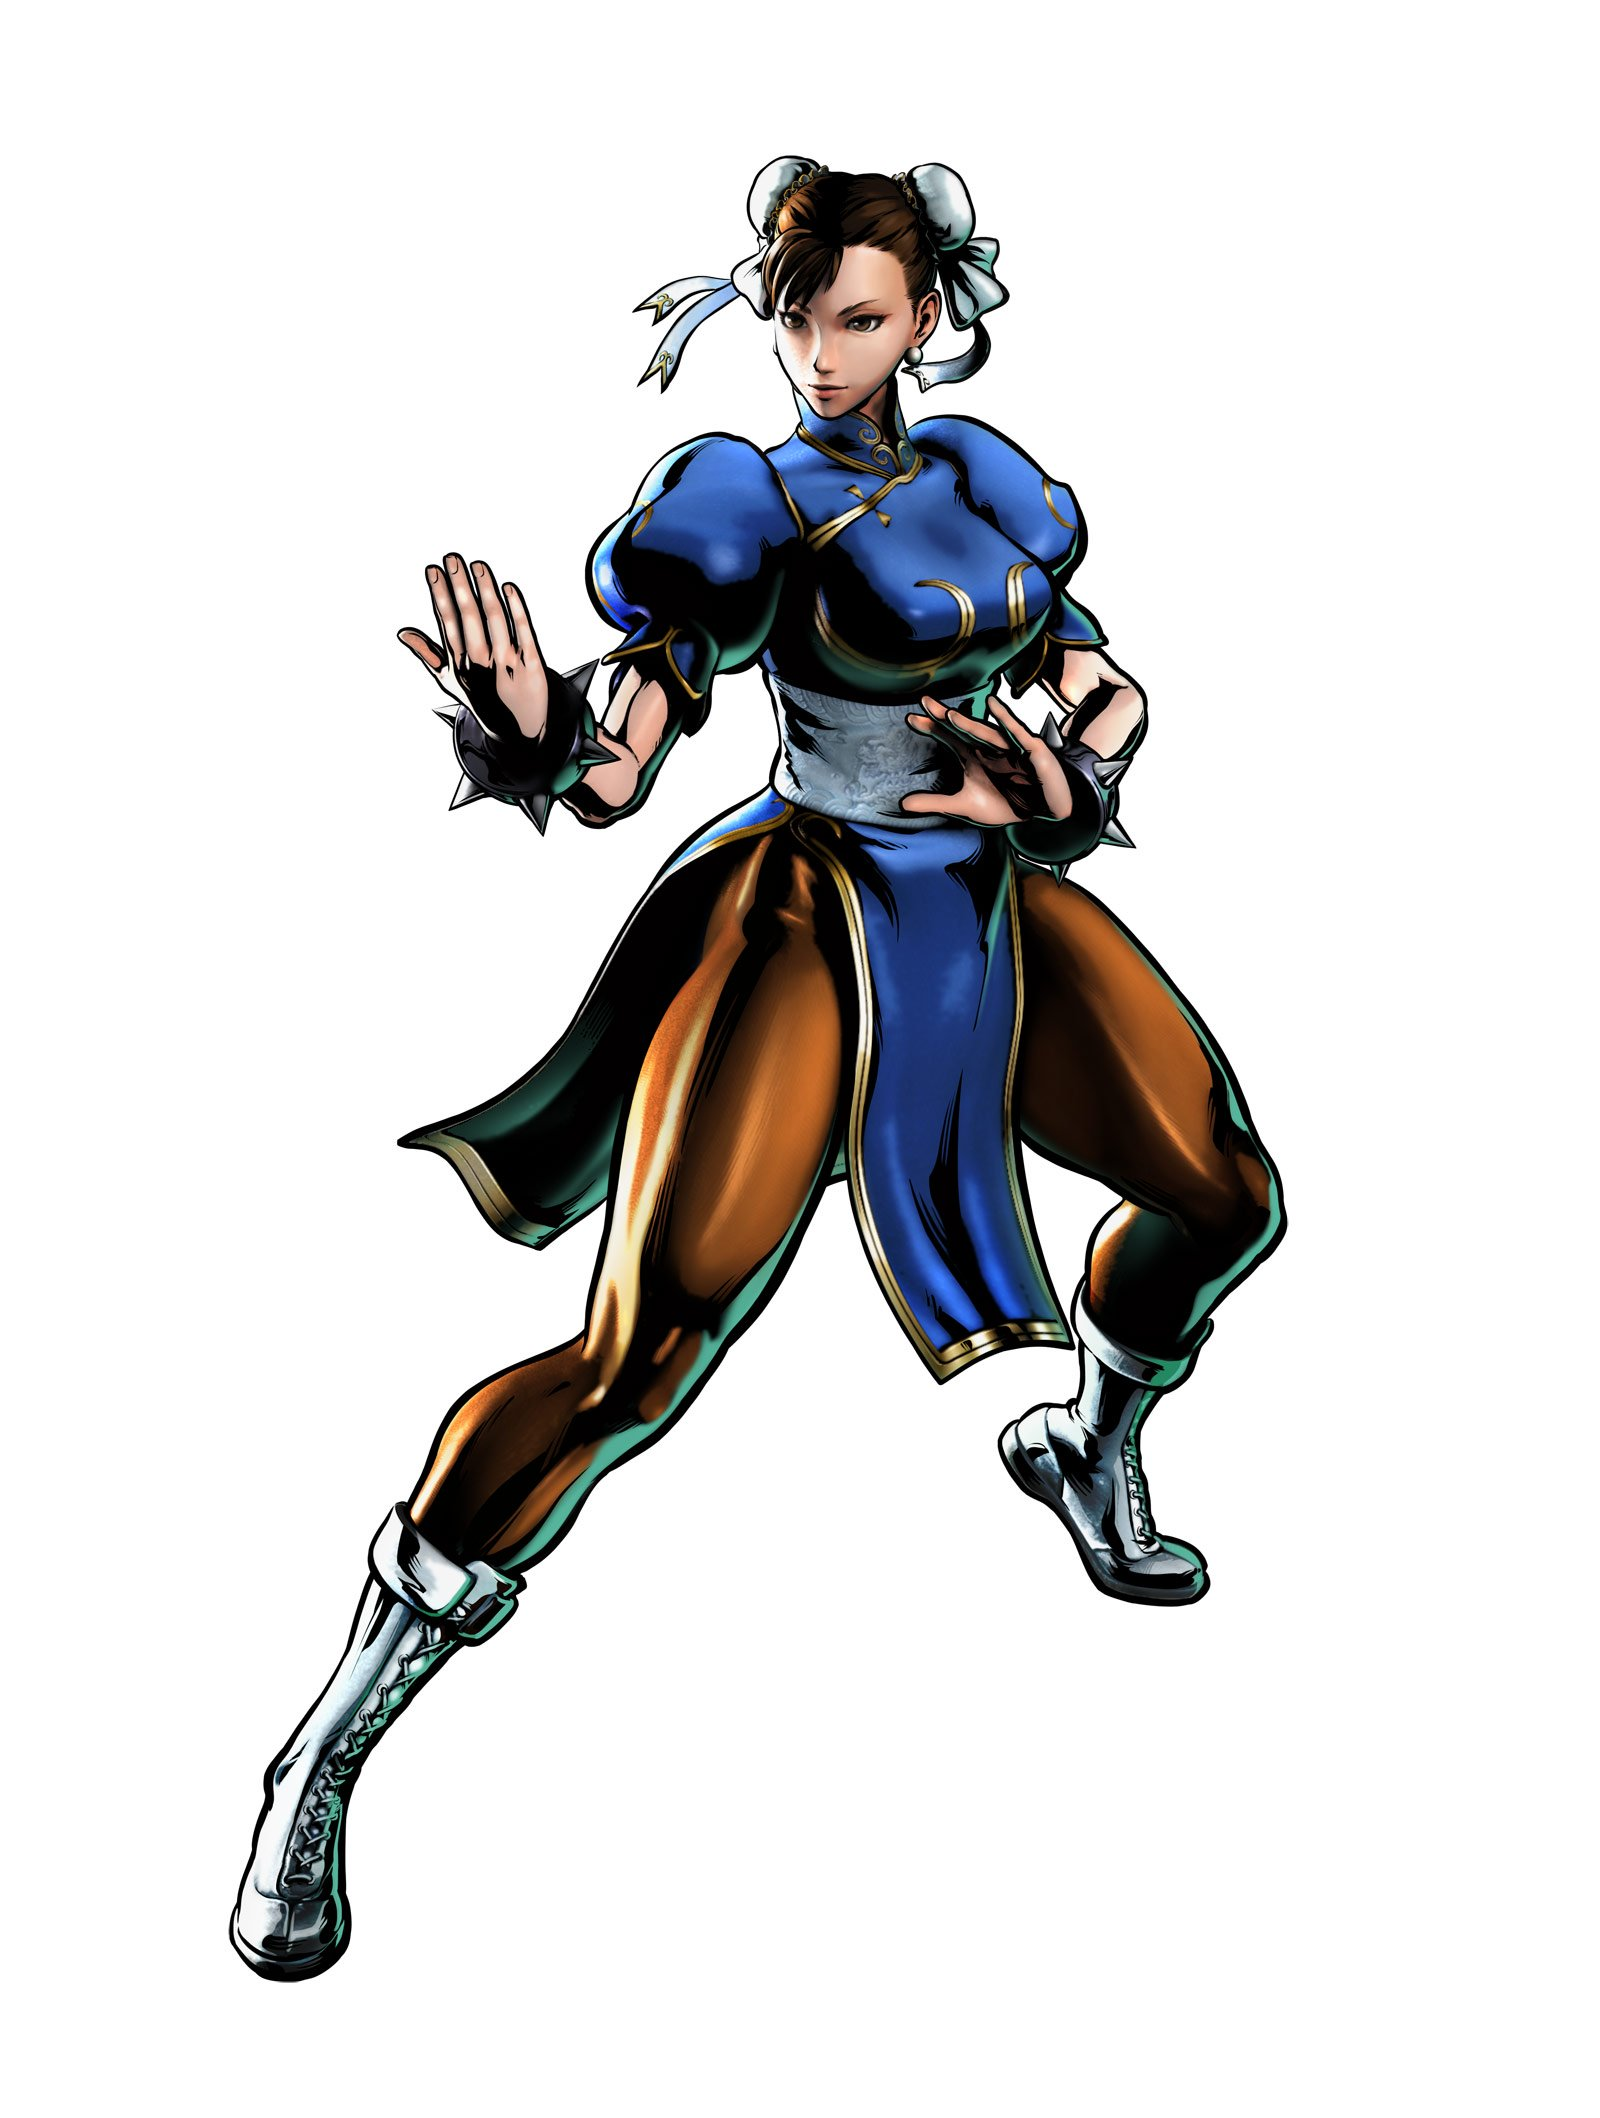 Umvc3 Wallpaper Girls Chun Li Street Fighter